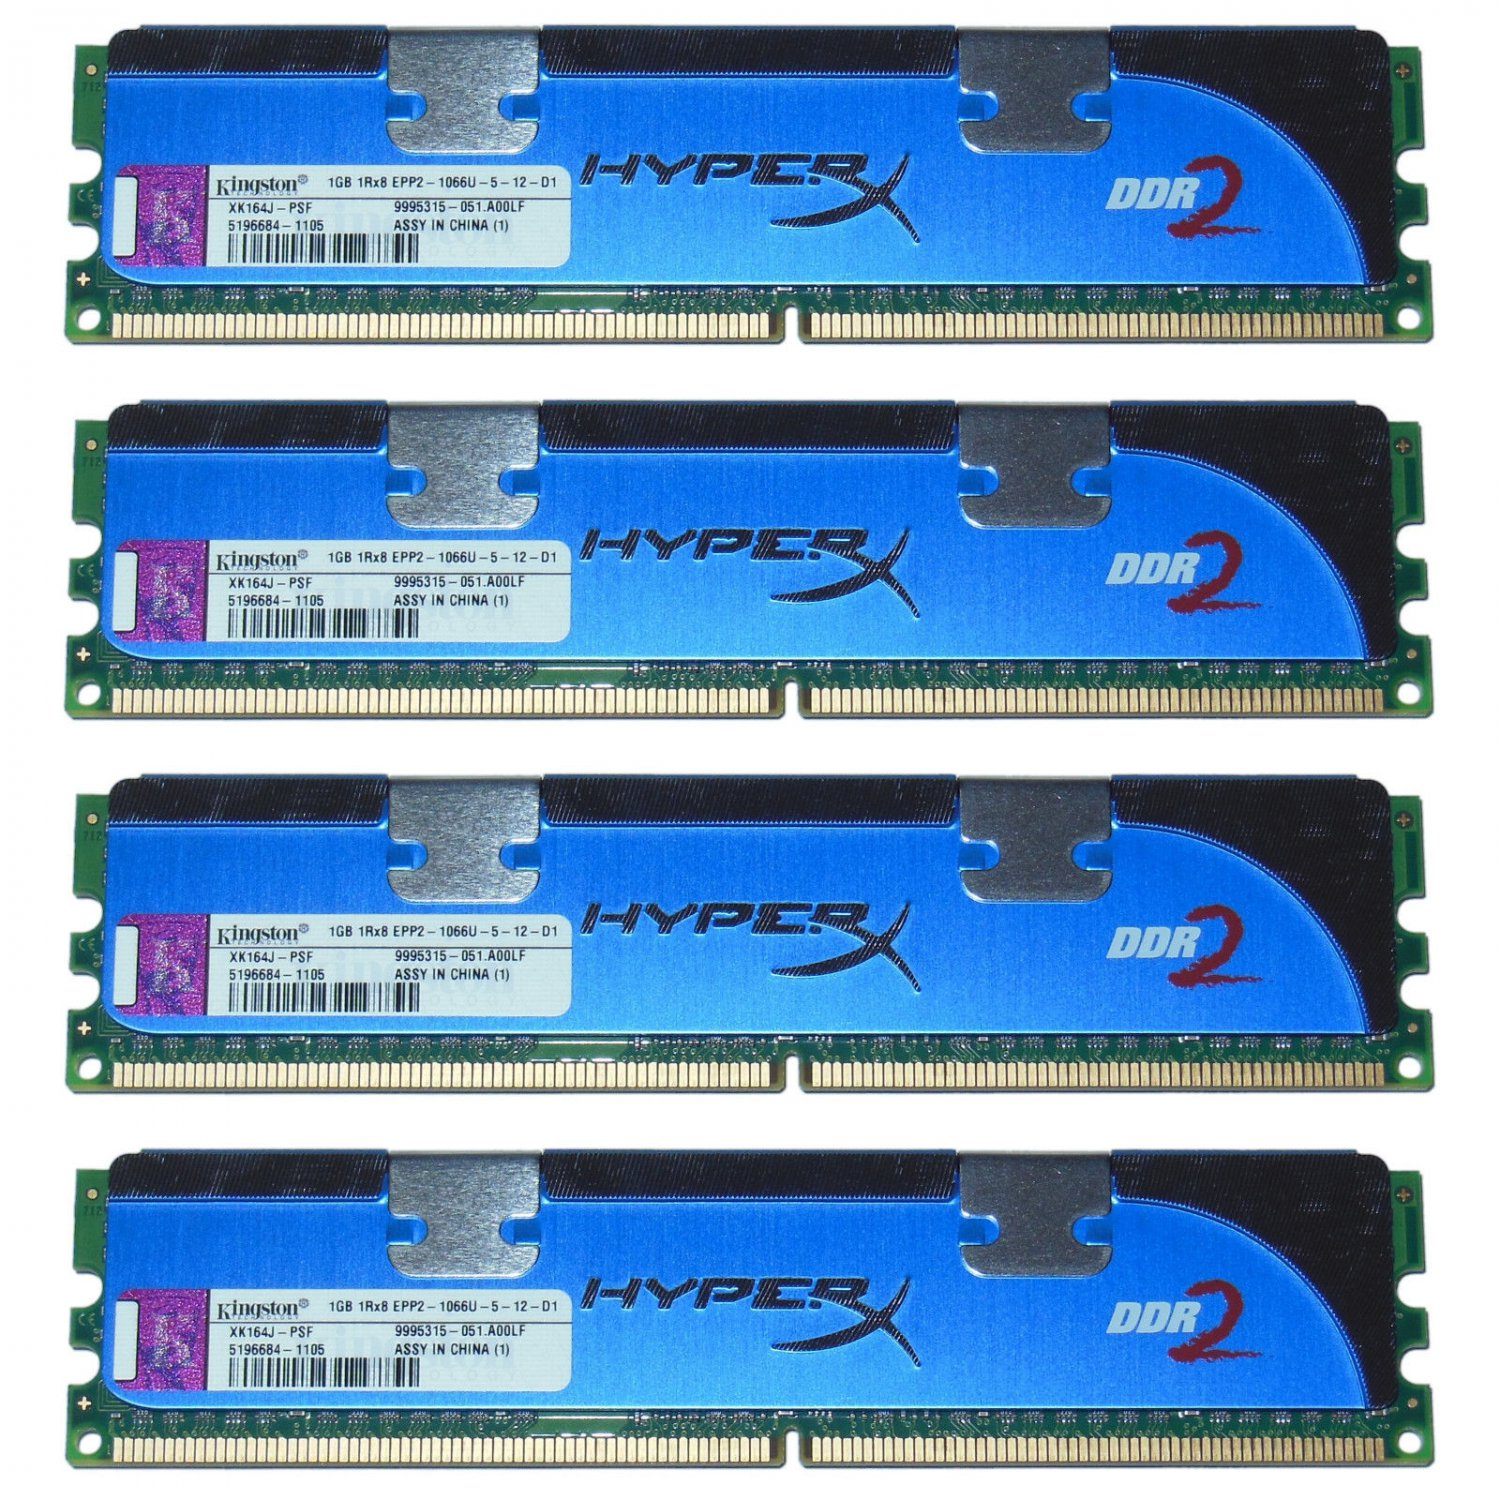 OEM Kingston HyperX XK164J-PSF 4GB (1x4) 1066Mhz DDR2 RAM PC2-8500U 240-Pin